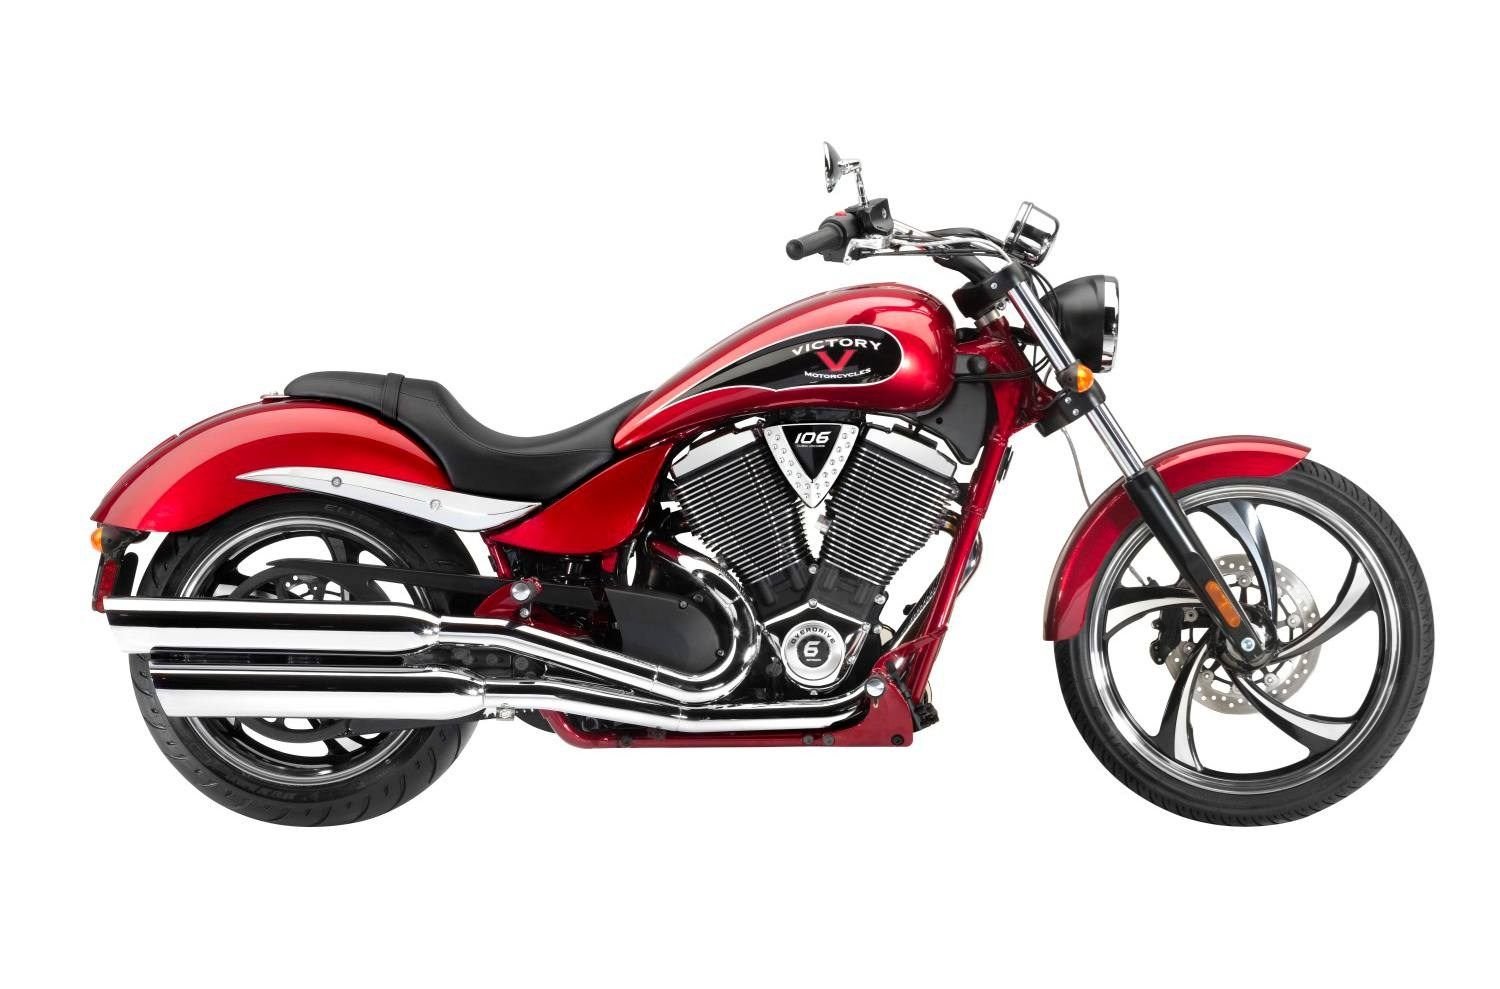 2014 Victory Motorcycles Jackpot™ Sunset Red & Gloss Black